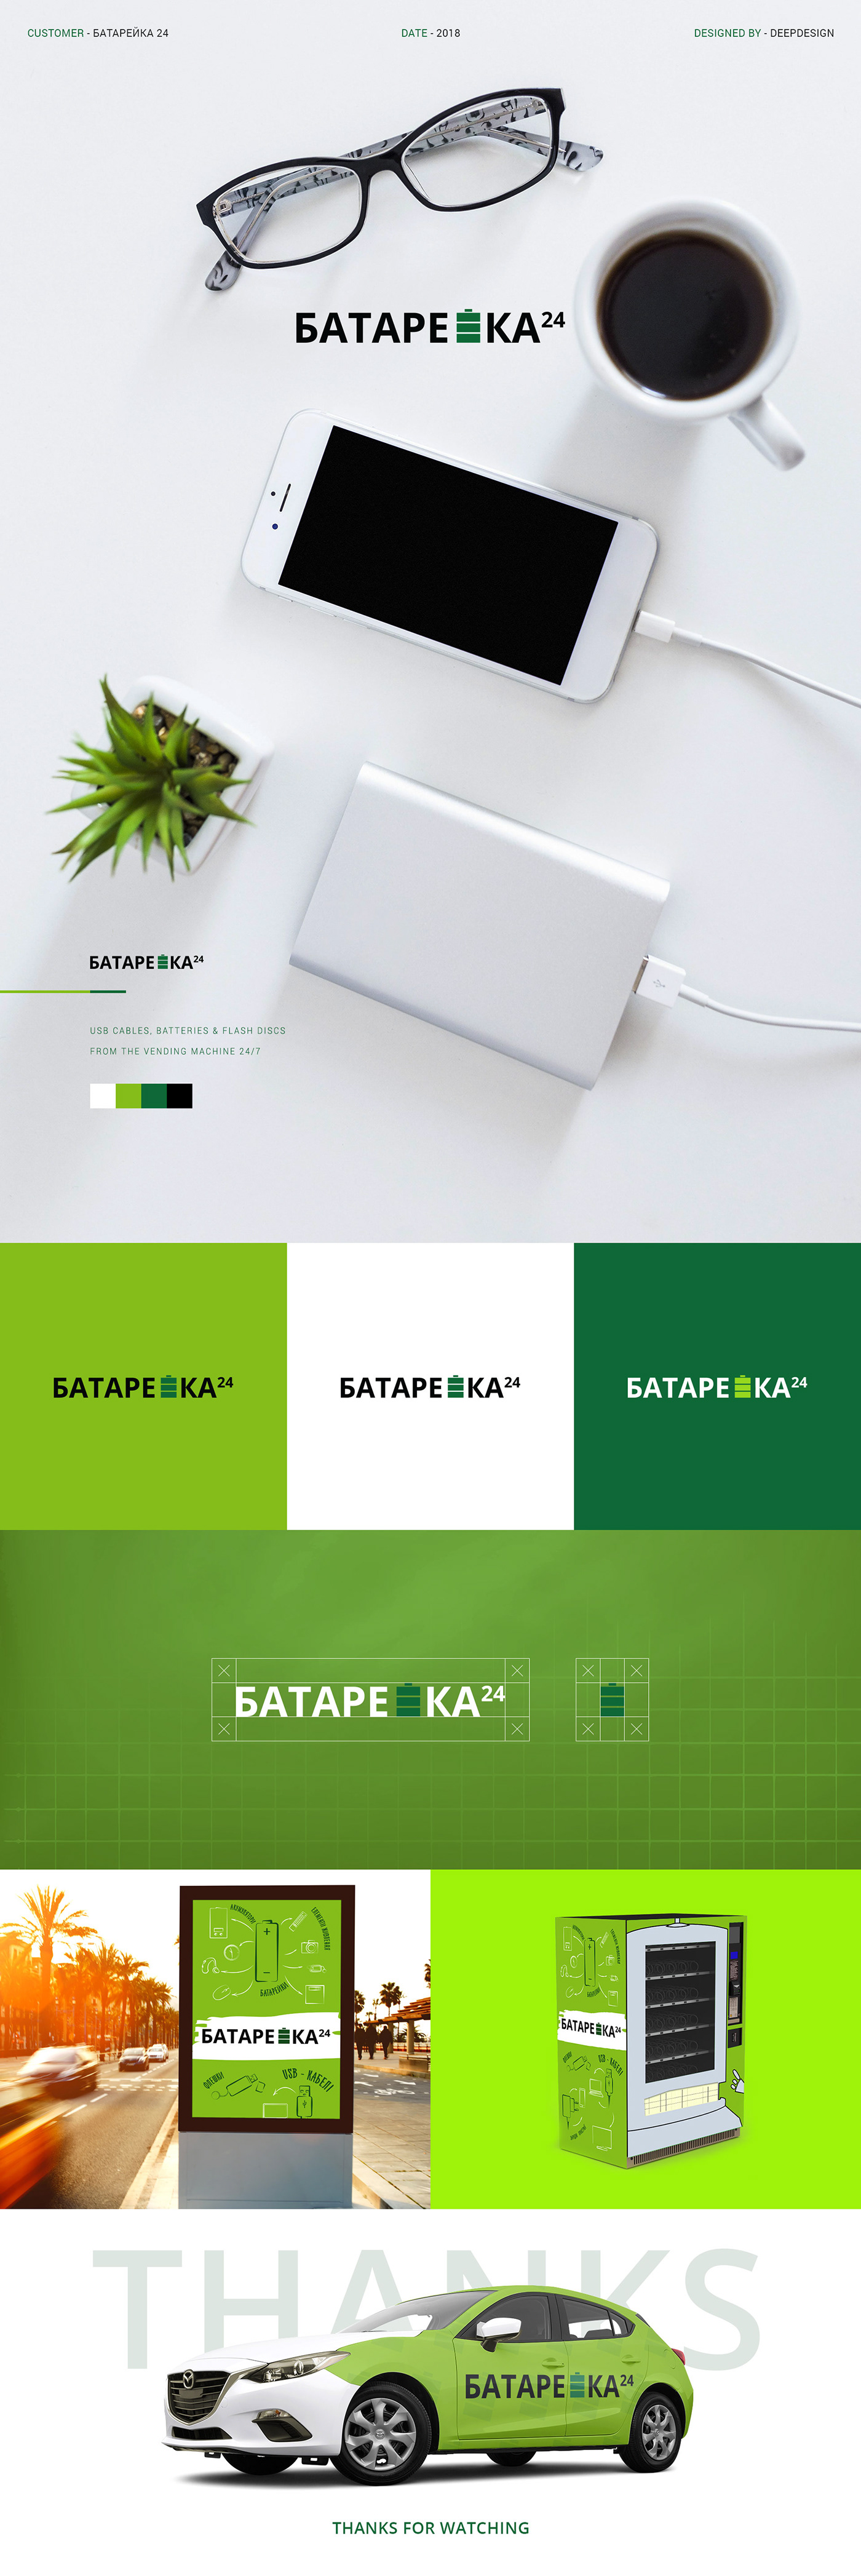 БАТАРЕЙКА Logo design and Vending machine branding